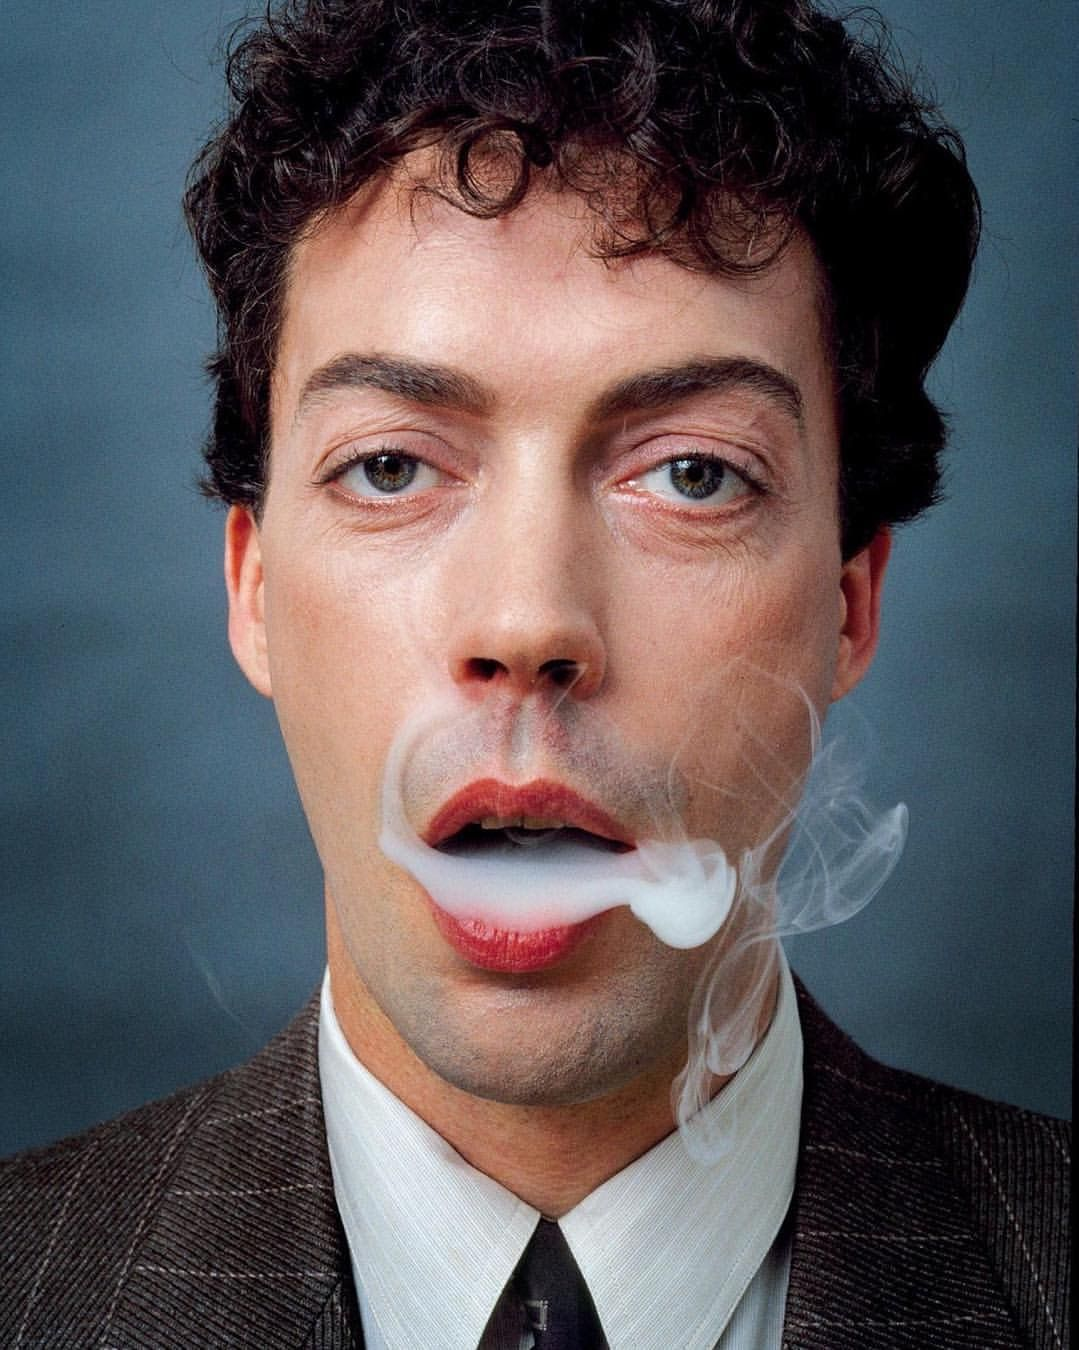 Nose piercing for big nose  Tim Curry  Iconic Portraiture  Pinterest  Tim curry